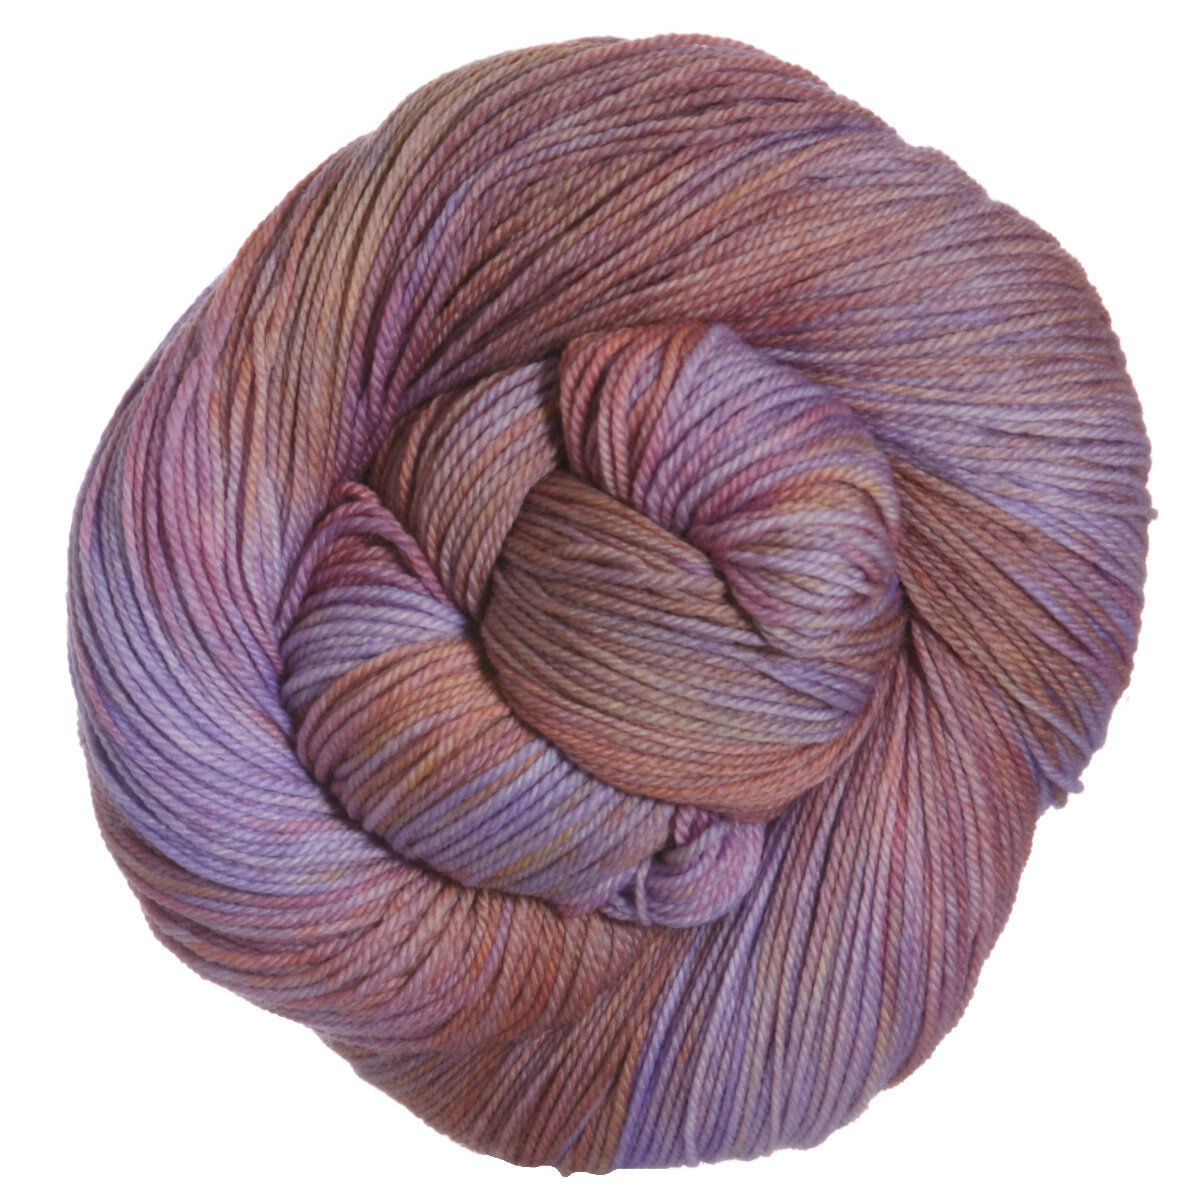 Dream In Color Yarn Inspirational Dream In Color Smooshy Yarn 240 Wisterious at Jimmy Of Incredible 42 Photos Dream In Color Yarn